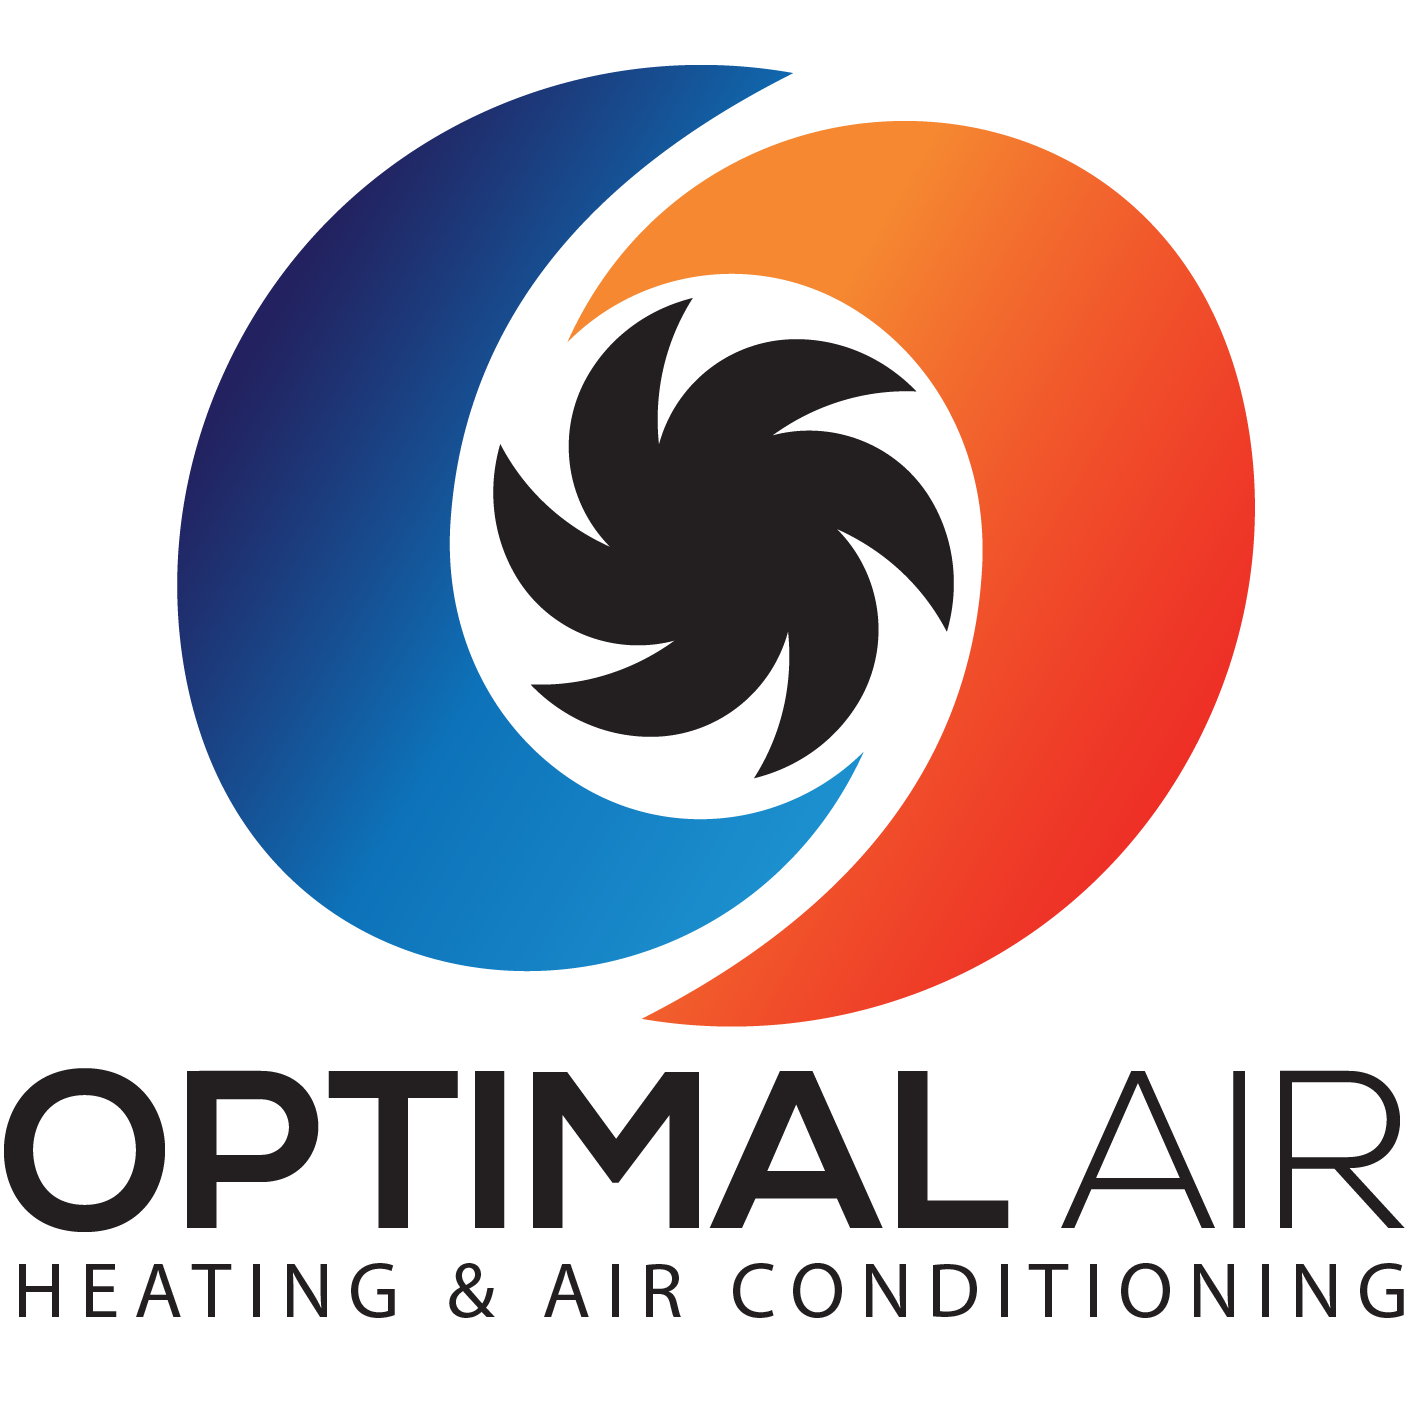 Optimal Air Heating & Air Conditioning image 0